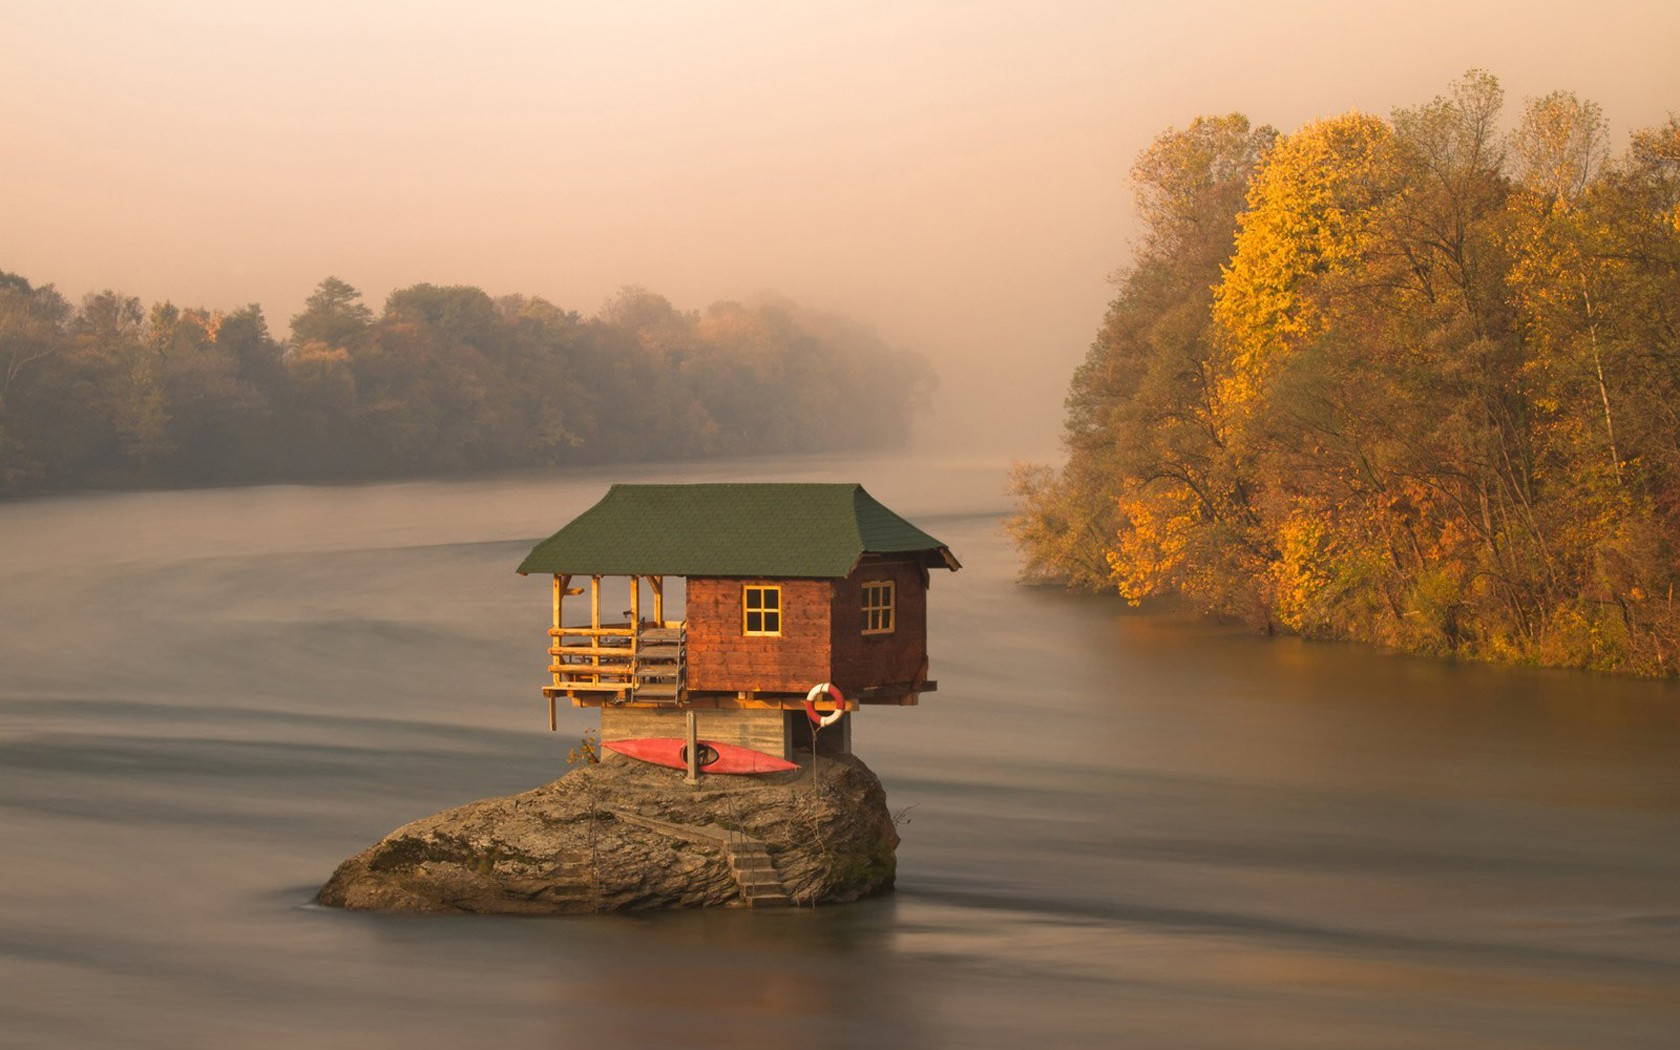 864584-cabin-forests-lakes-landscapes-nature-rocks-water